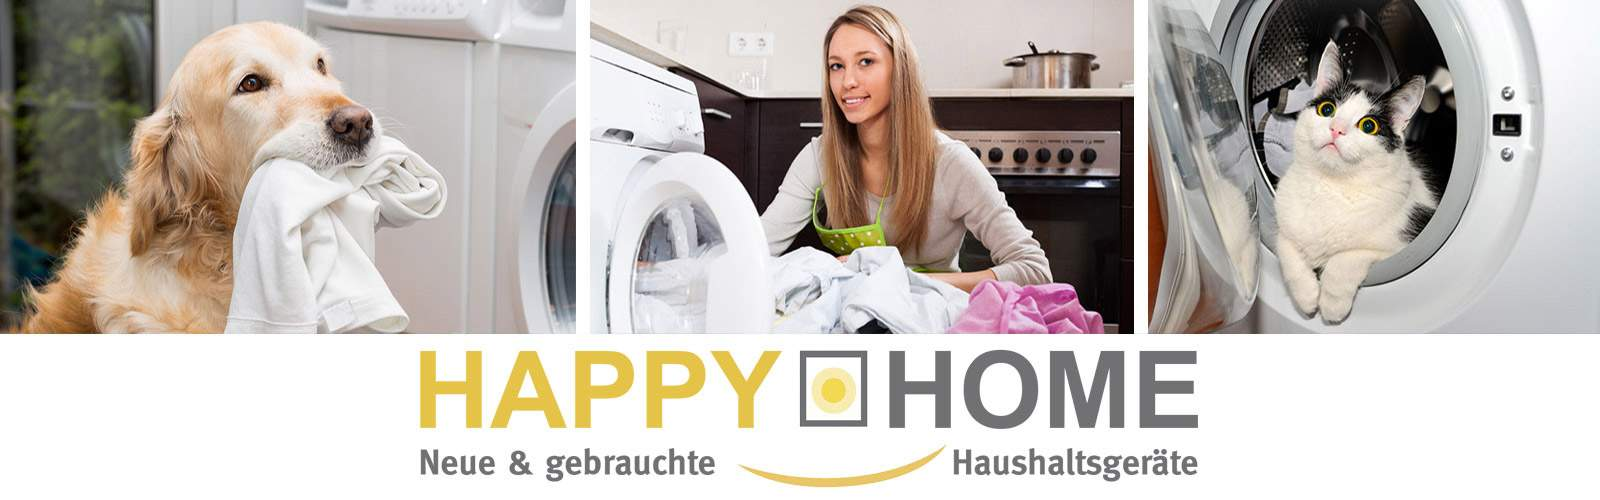 happy_home_koeln_02b